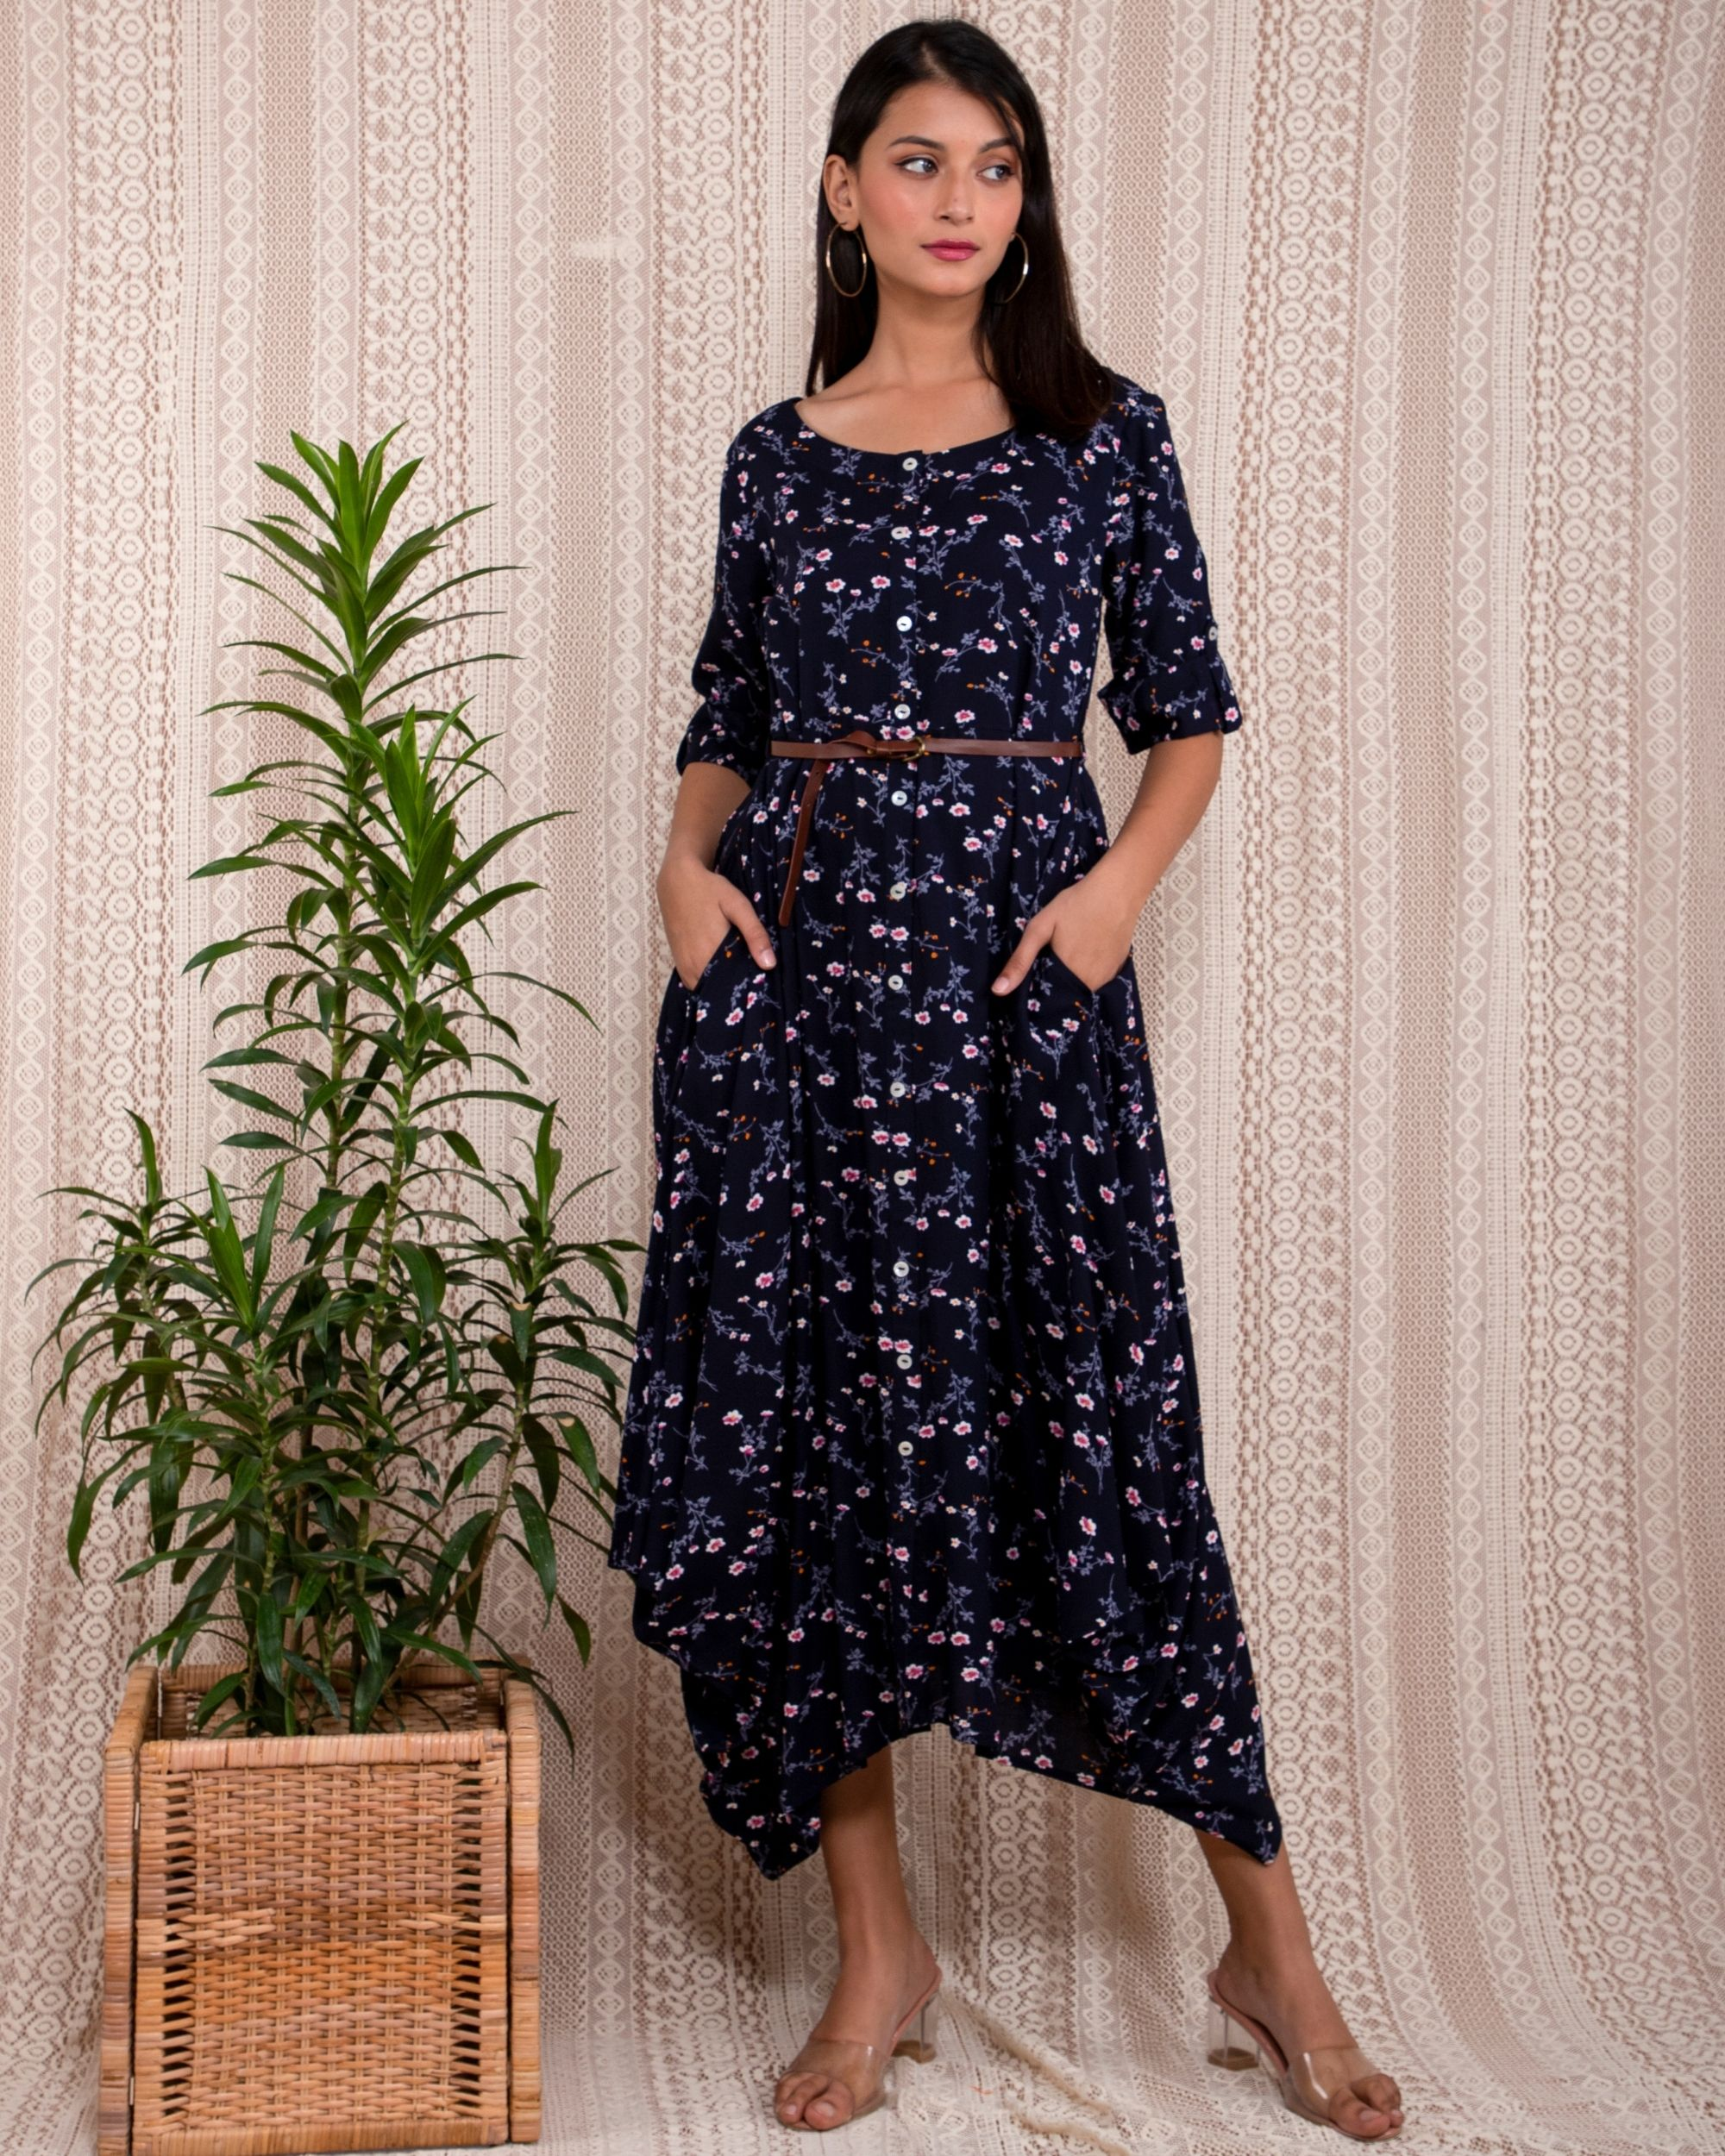 Navy blue floral printed asymmetrical dress with belt - Set Of Two